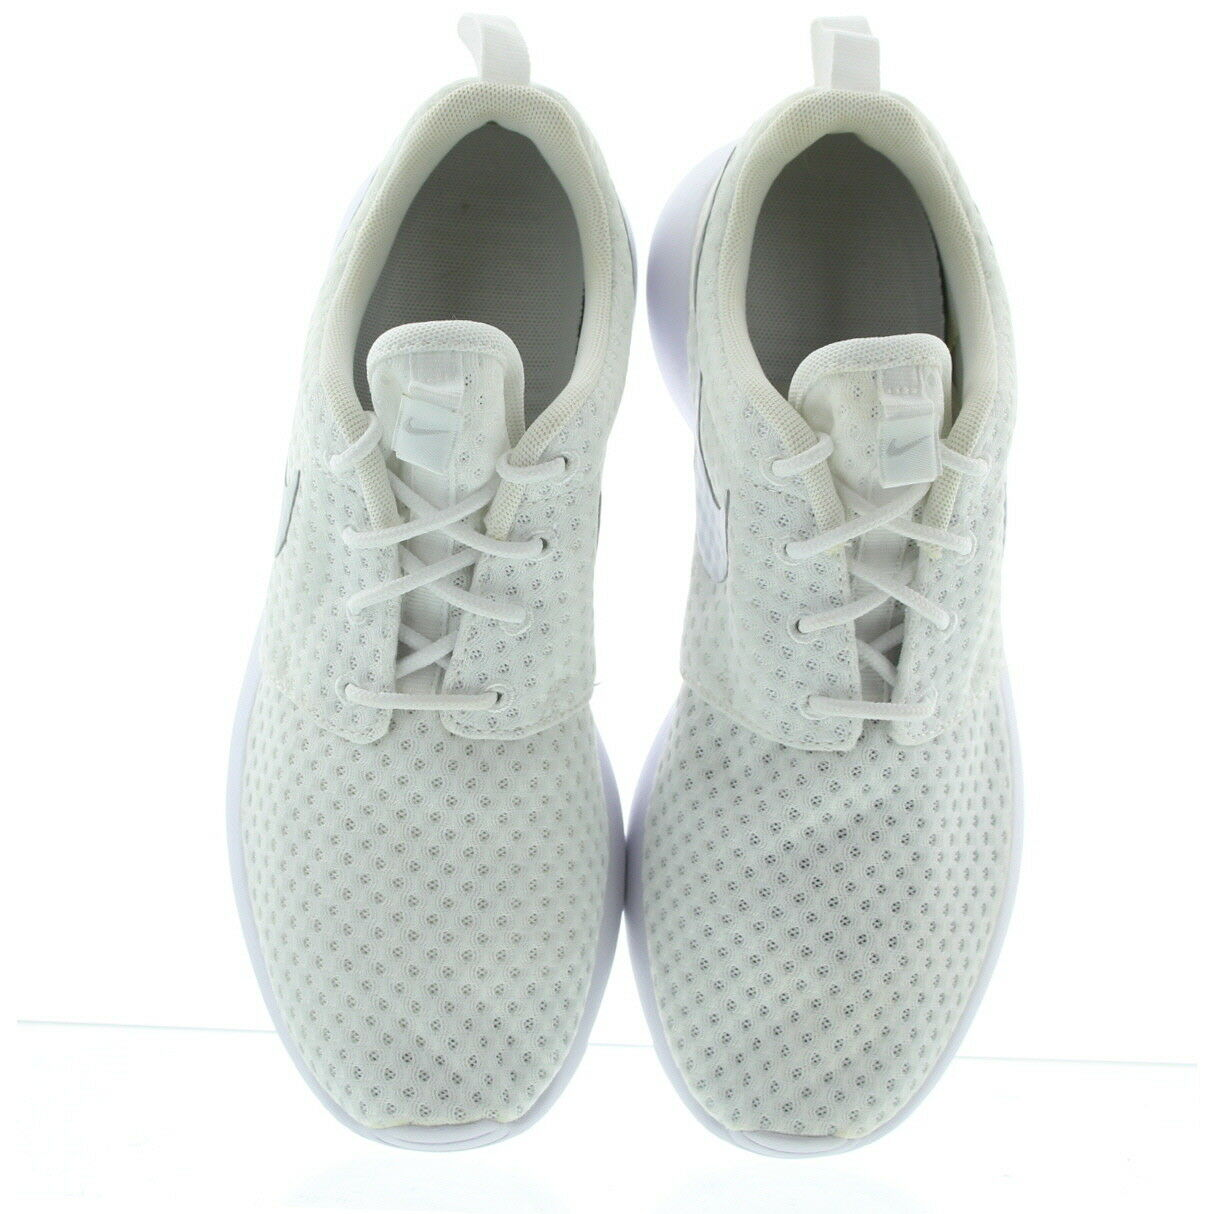 70e29a12d7b09 ... Nike 724850 724850 724850 Womens Roshe One Breathe Low Top Running  Athletic Shoes Sneakers 647696 ...